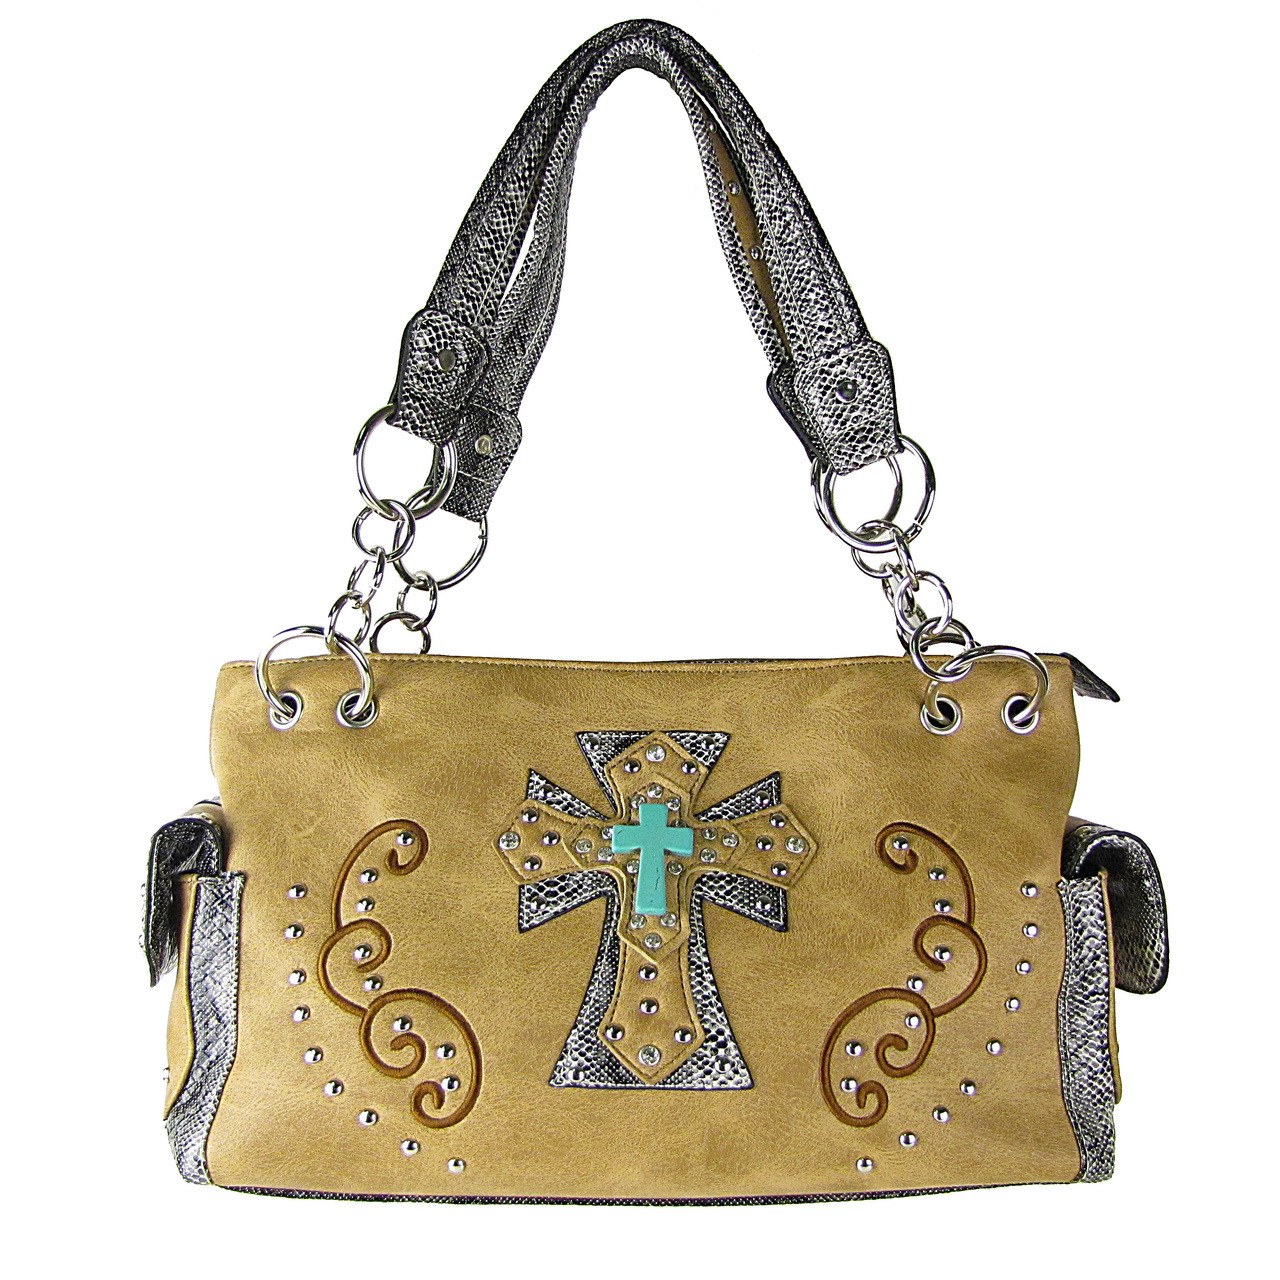 TAN REPTILE STUDDED RHINESTONE BLUE STONE CROSS LOOK SHOULDER HANDBAG HB1-W3CCRTAN